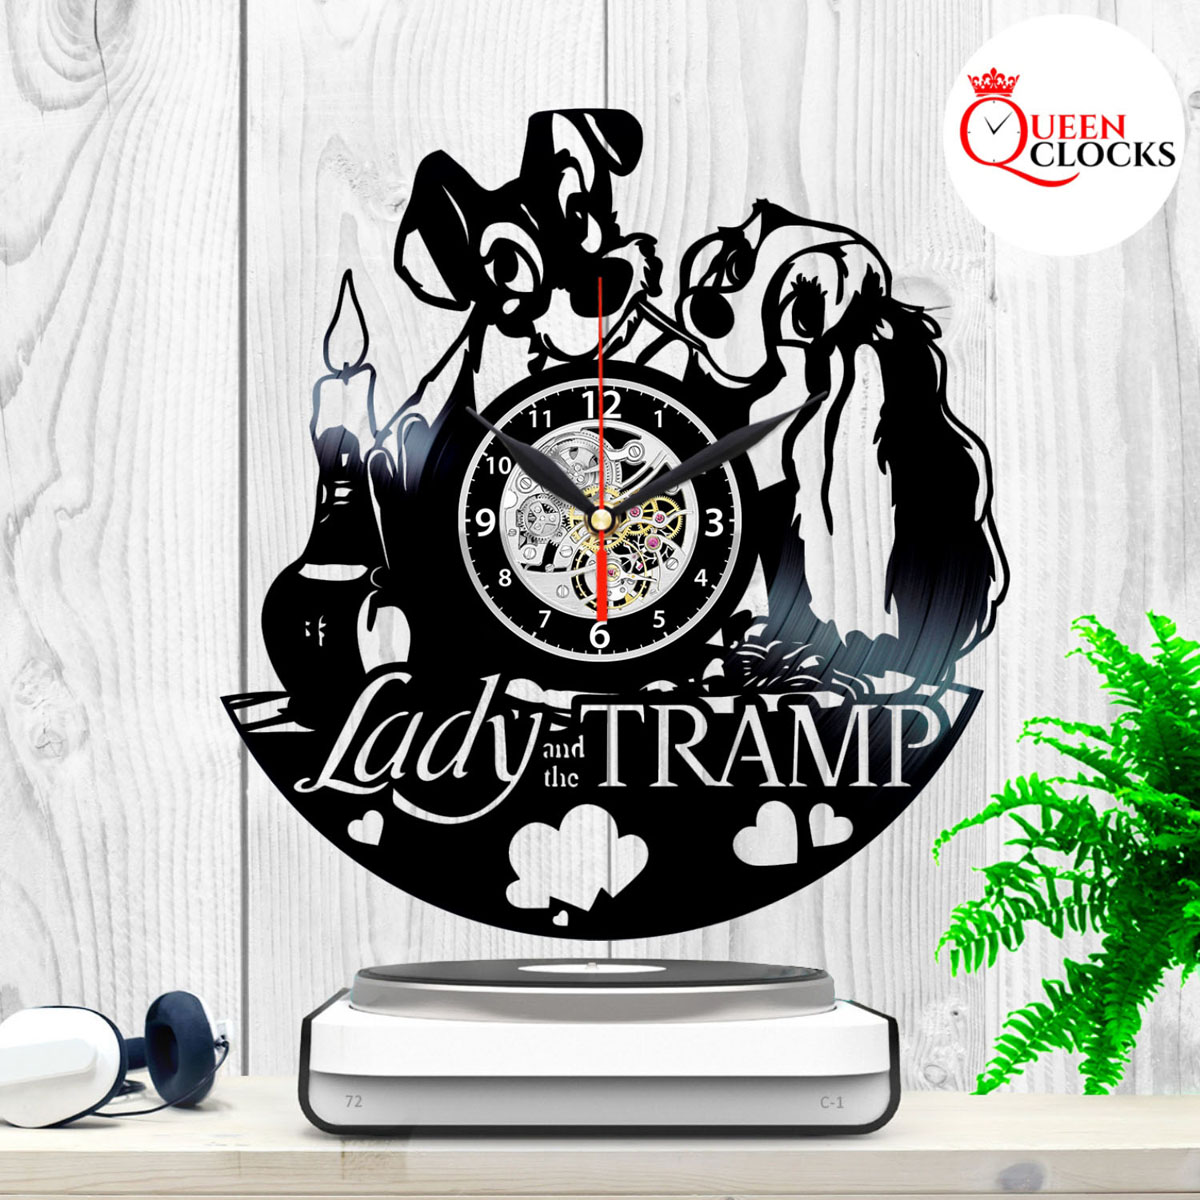 Home Design Gift Ideas: Lady And The Tramp Walt Disney Home Decor Vinyl Record